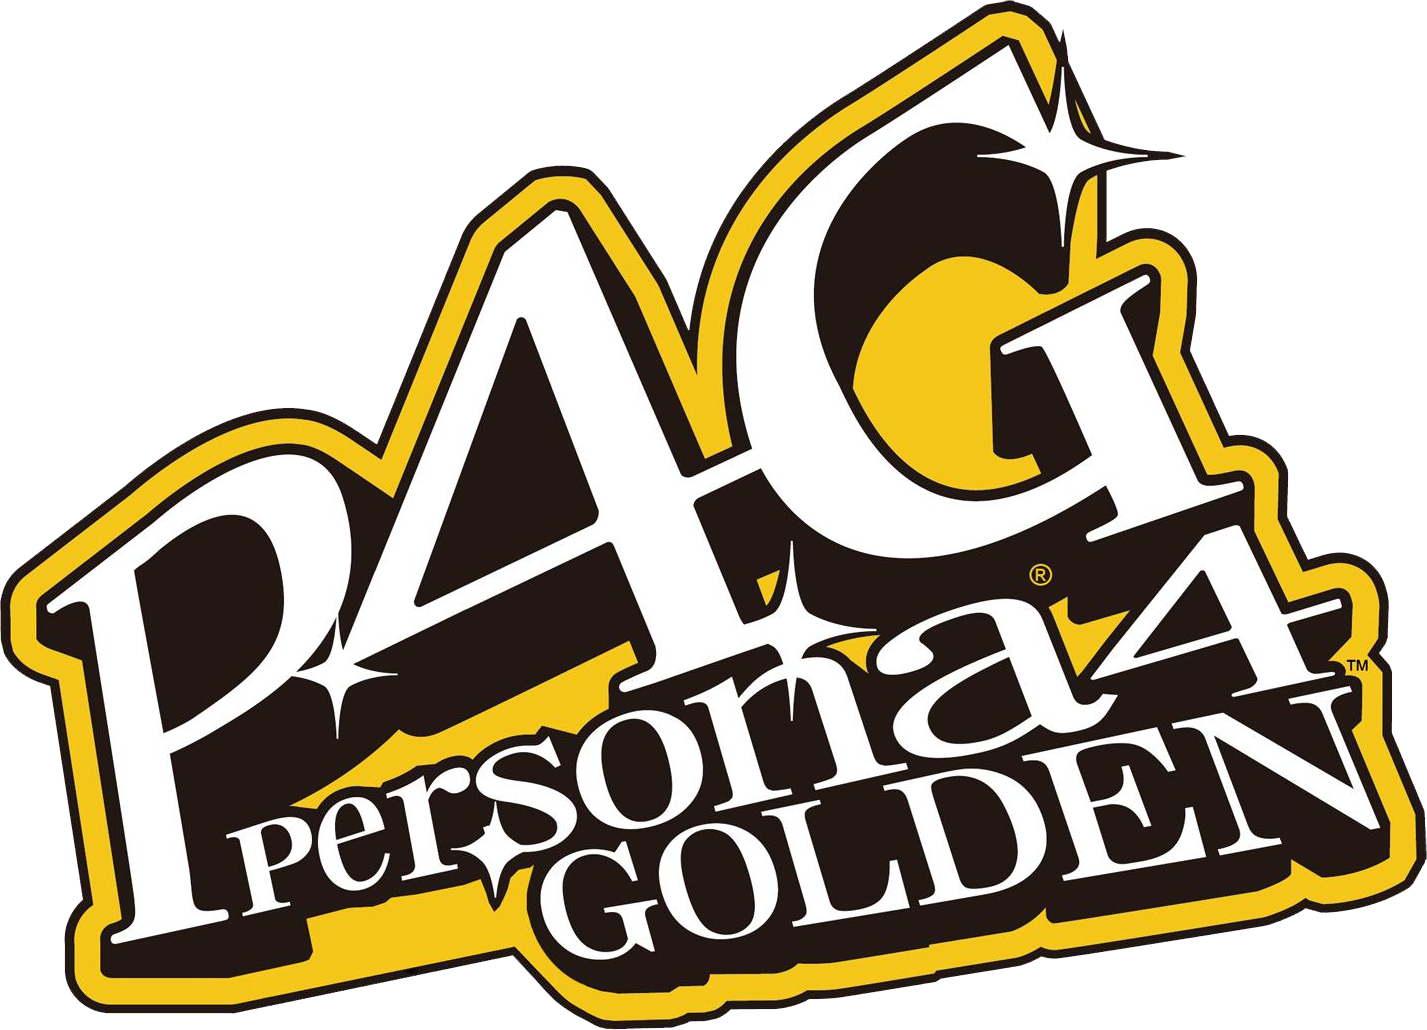 Amazing Persona 4 Golden Pictures & Backgrounds